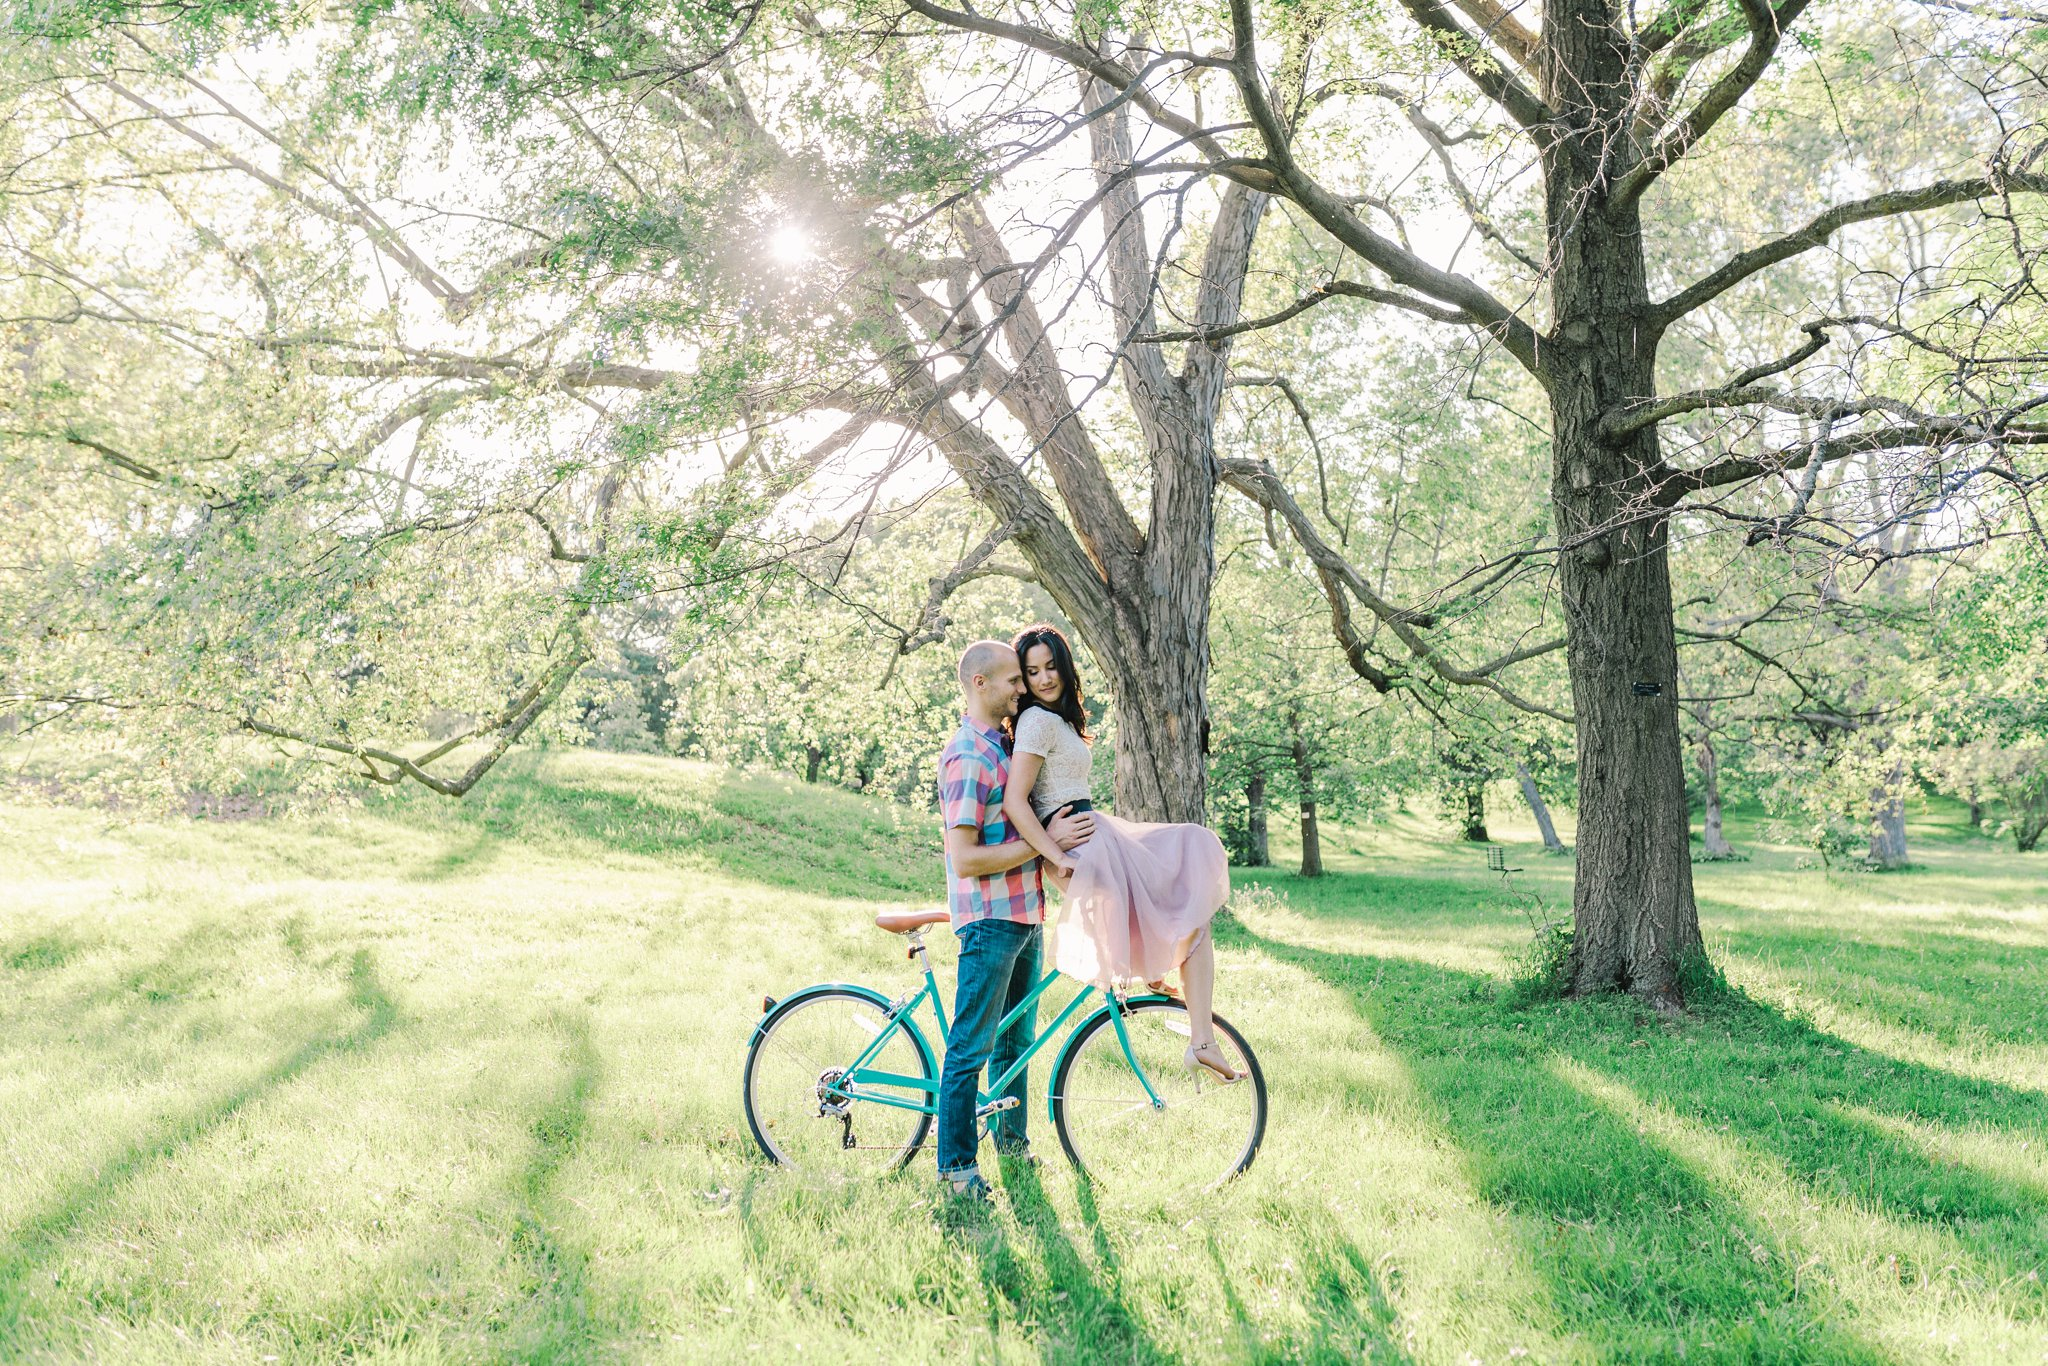 Blush tulle skirt, sitting on handlebars, teal bicycle, bicycle engagement photos in the arboretum, One Fine Beauty, Showpony Hair, Amy Pinder Photography